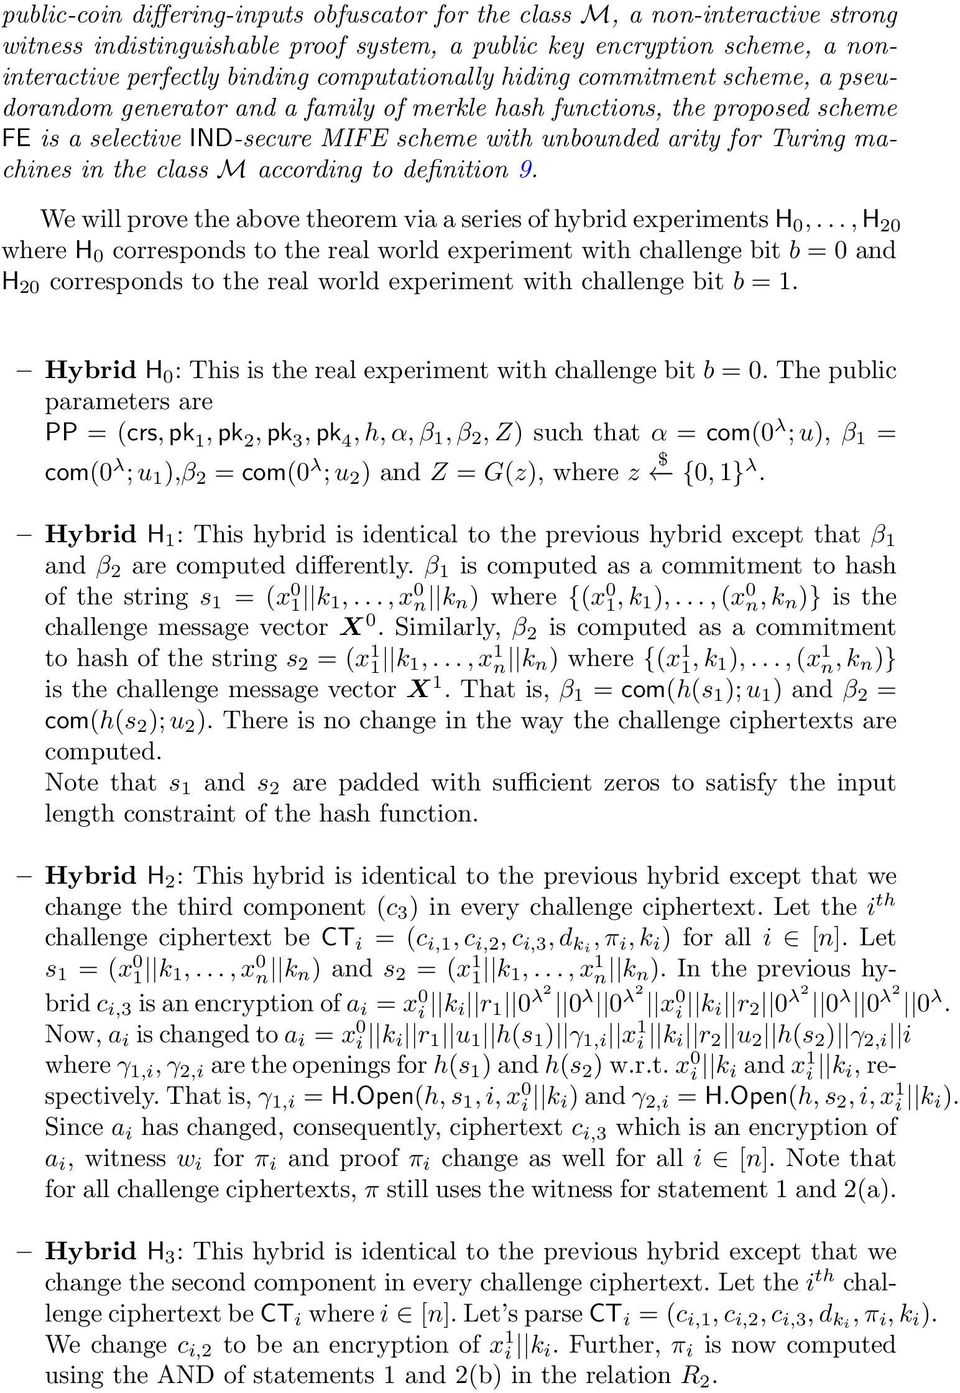 machines in the class M according to definition 9. We will prove the above theorem via a series of hybrid experiments H 0,.